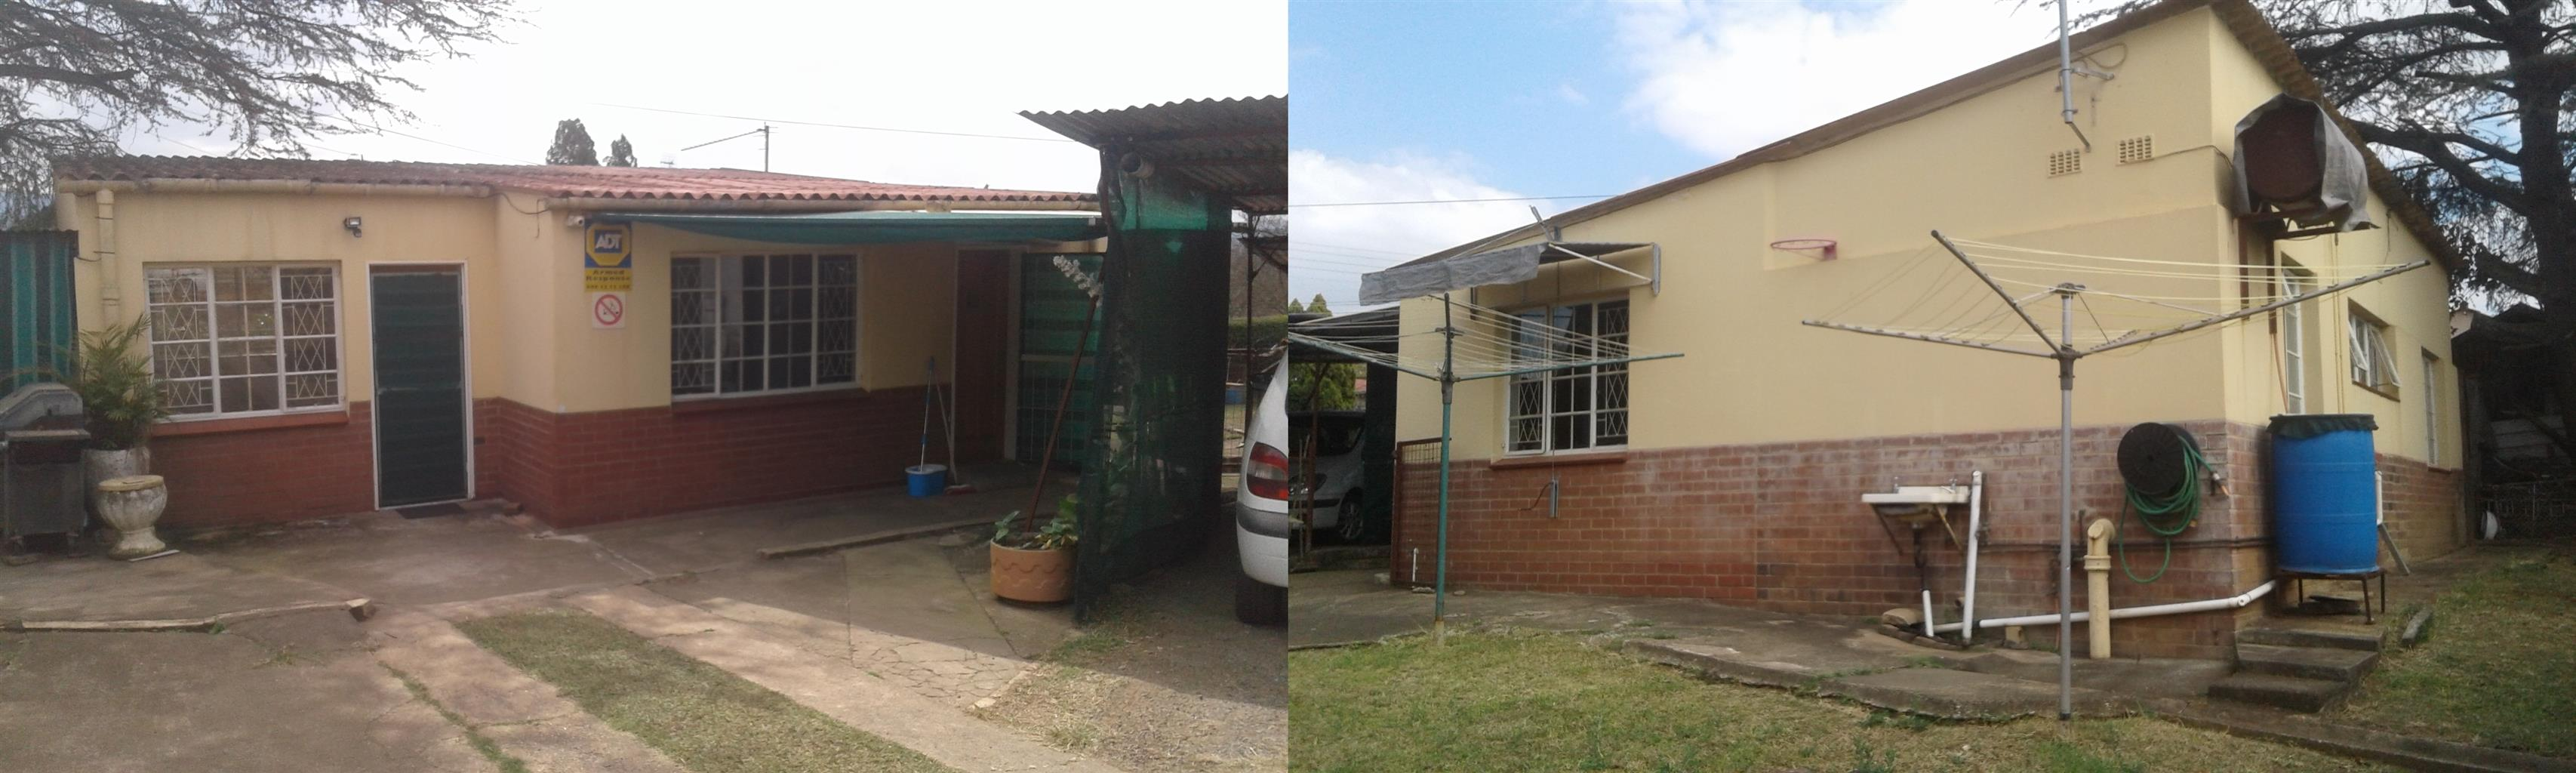 Garden flat for rent R 3,800 prepaid electricity